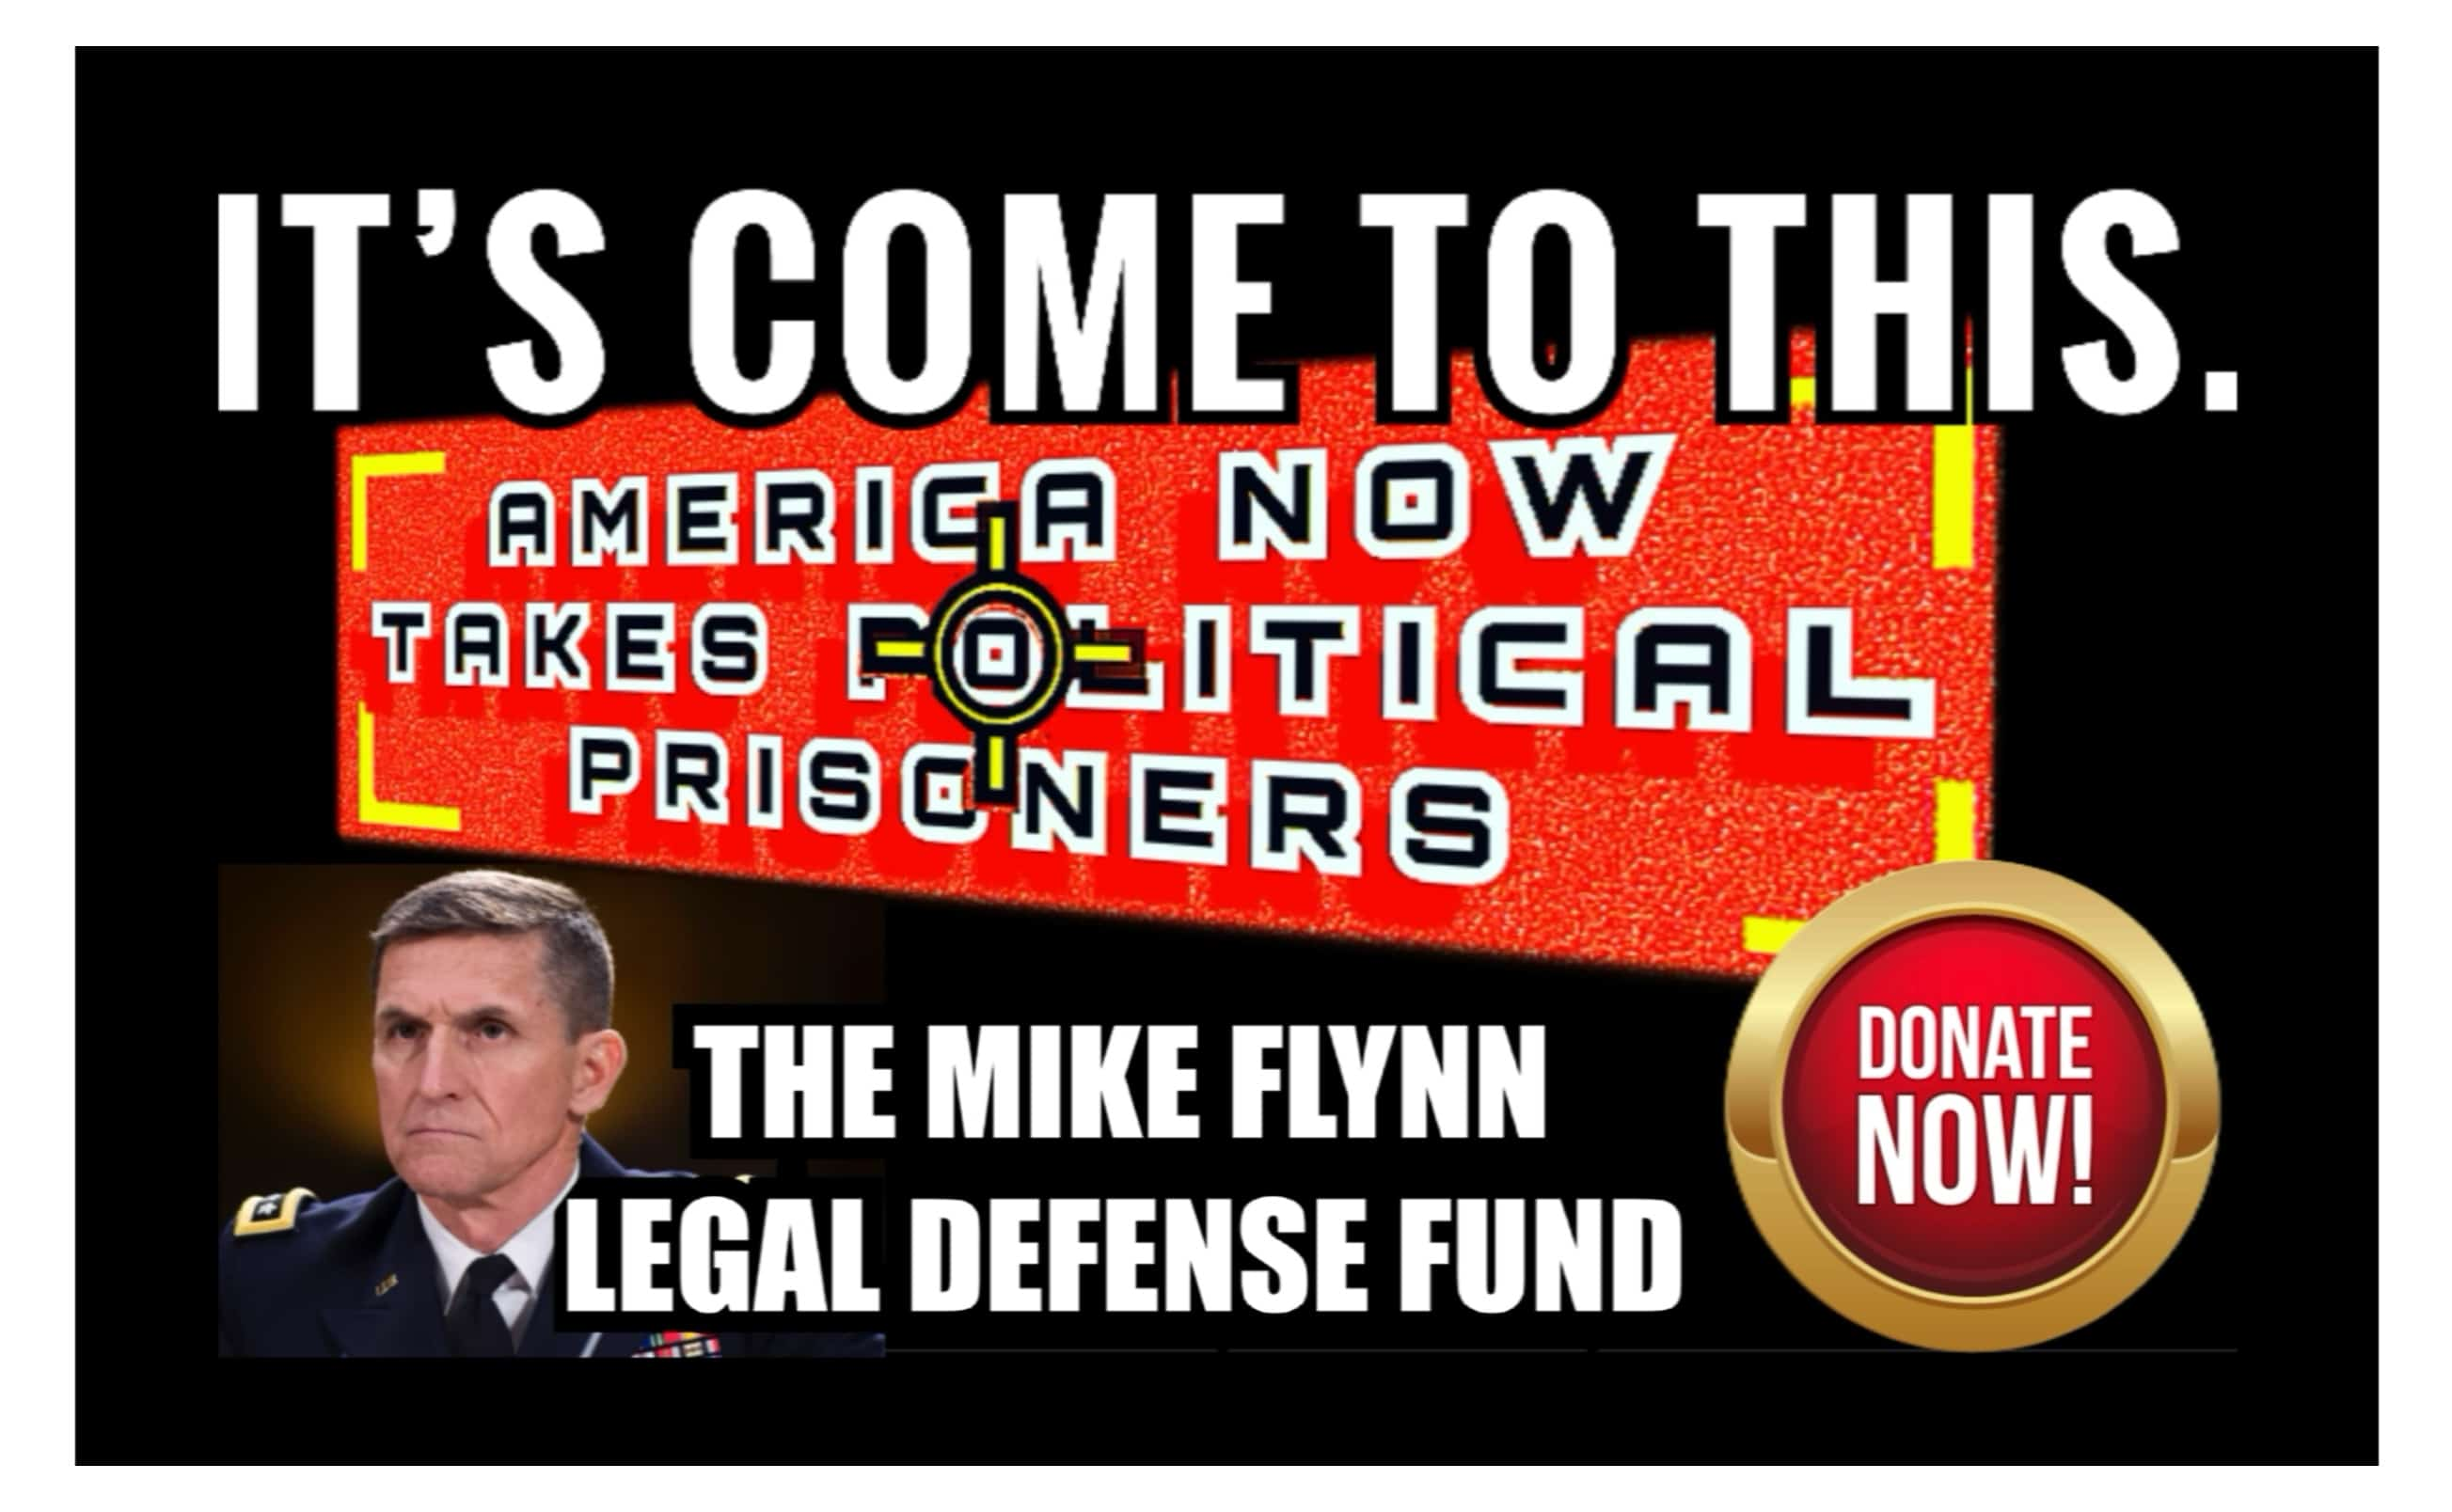 The Mike Flynn Legal Defense Fund